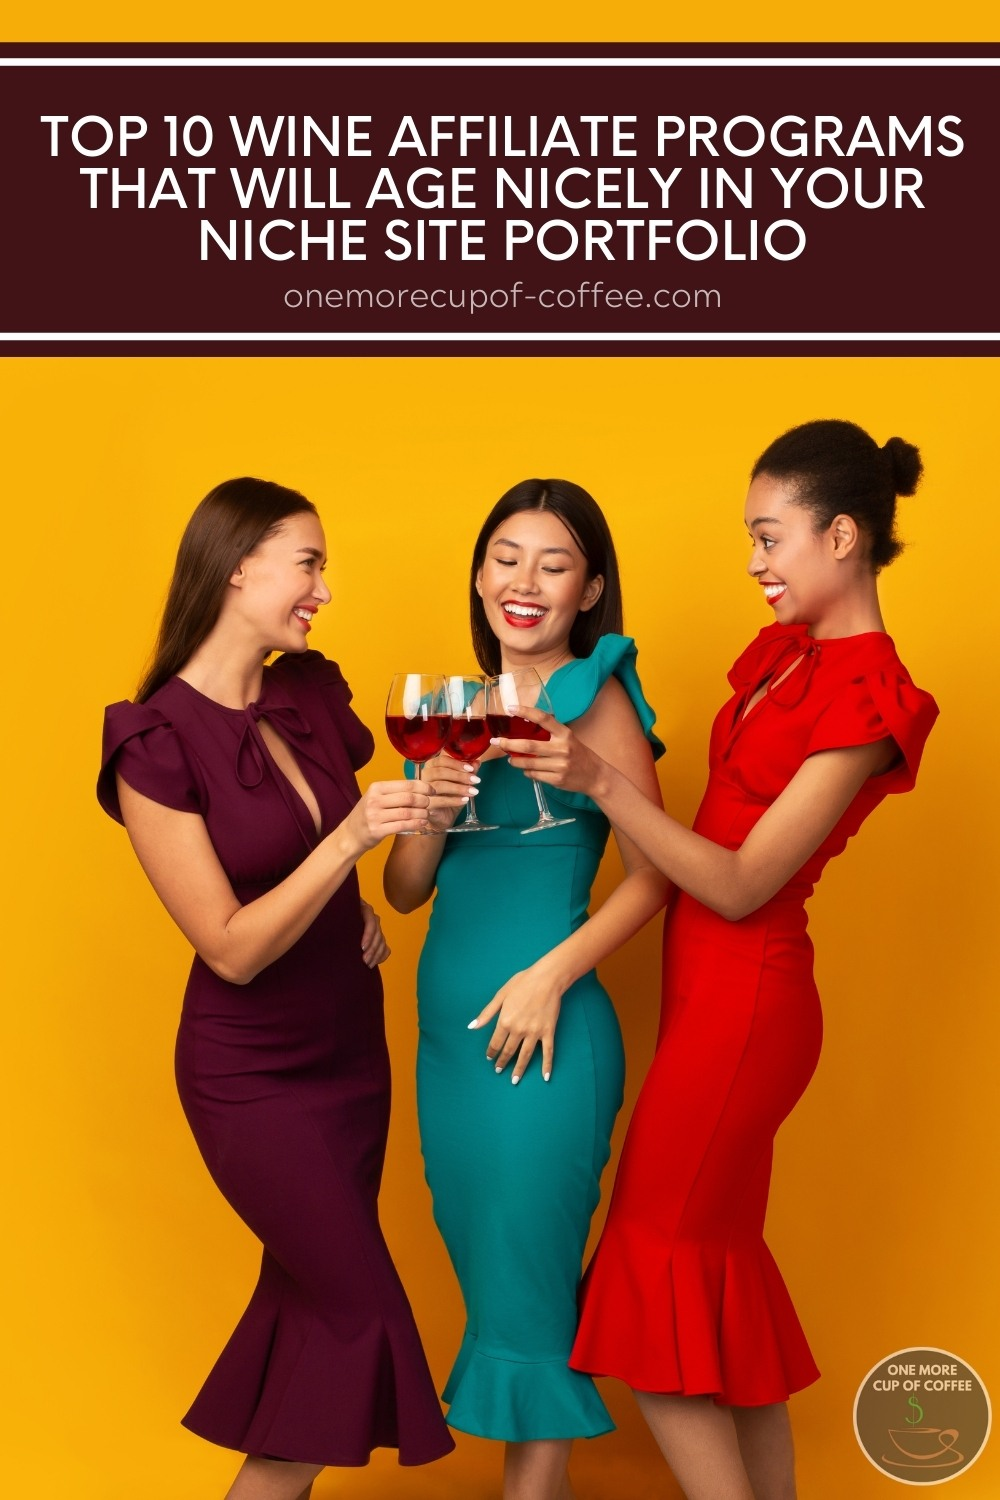 """3 women in maroon, teal, and red cocktail dresses holding a wine glass each, against a yellow background; with text overlay at the top win maroon banner """"Top 10 Wine Affiliate Programs That Will Age Nicely In Your Niche Site Portfolio"""""""